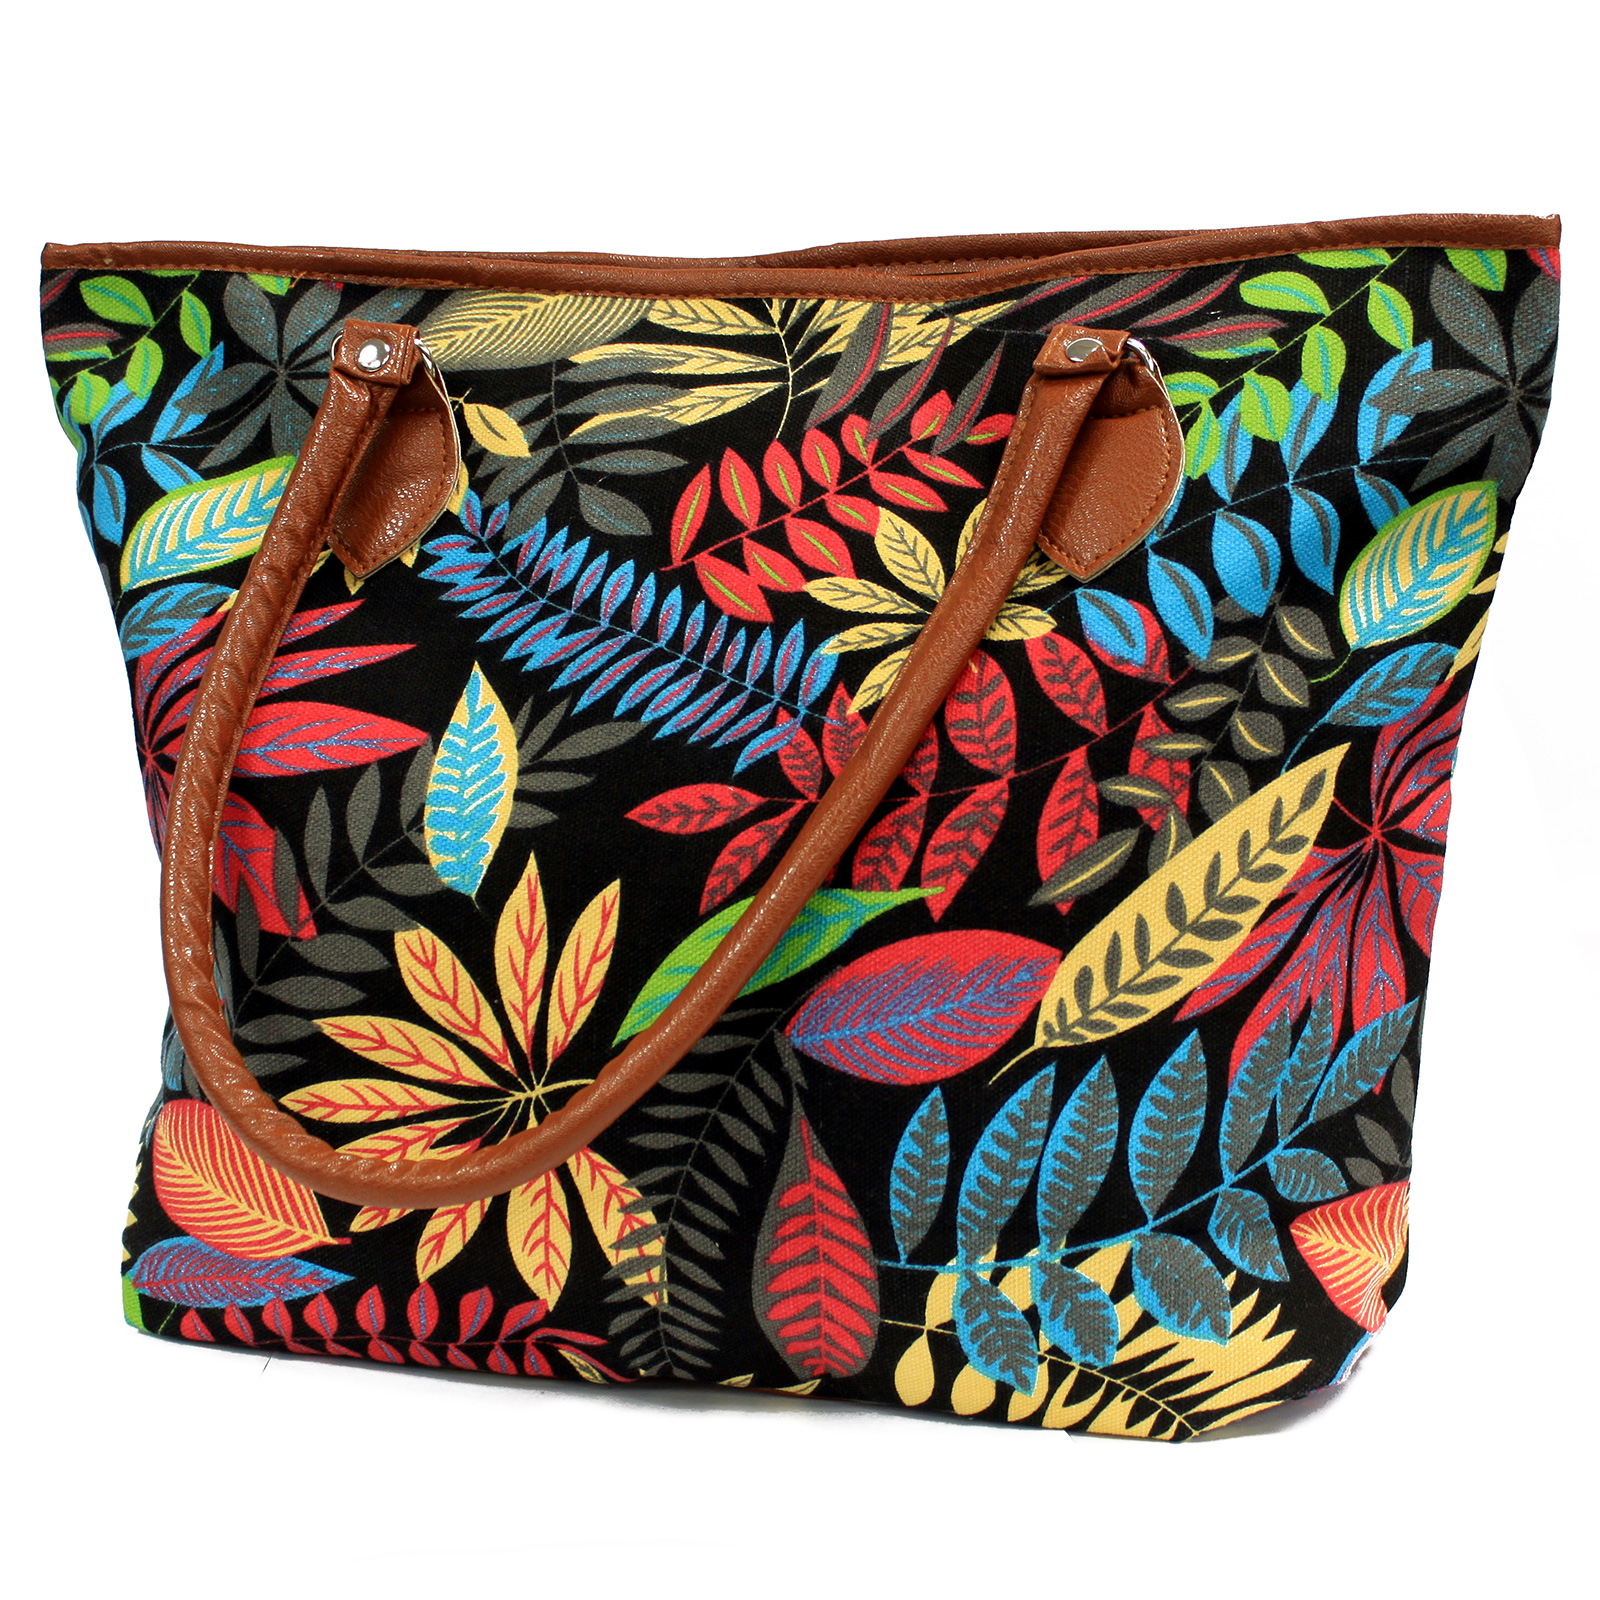 Jungle Bag - Tote Shopping - Black/Orange